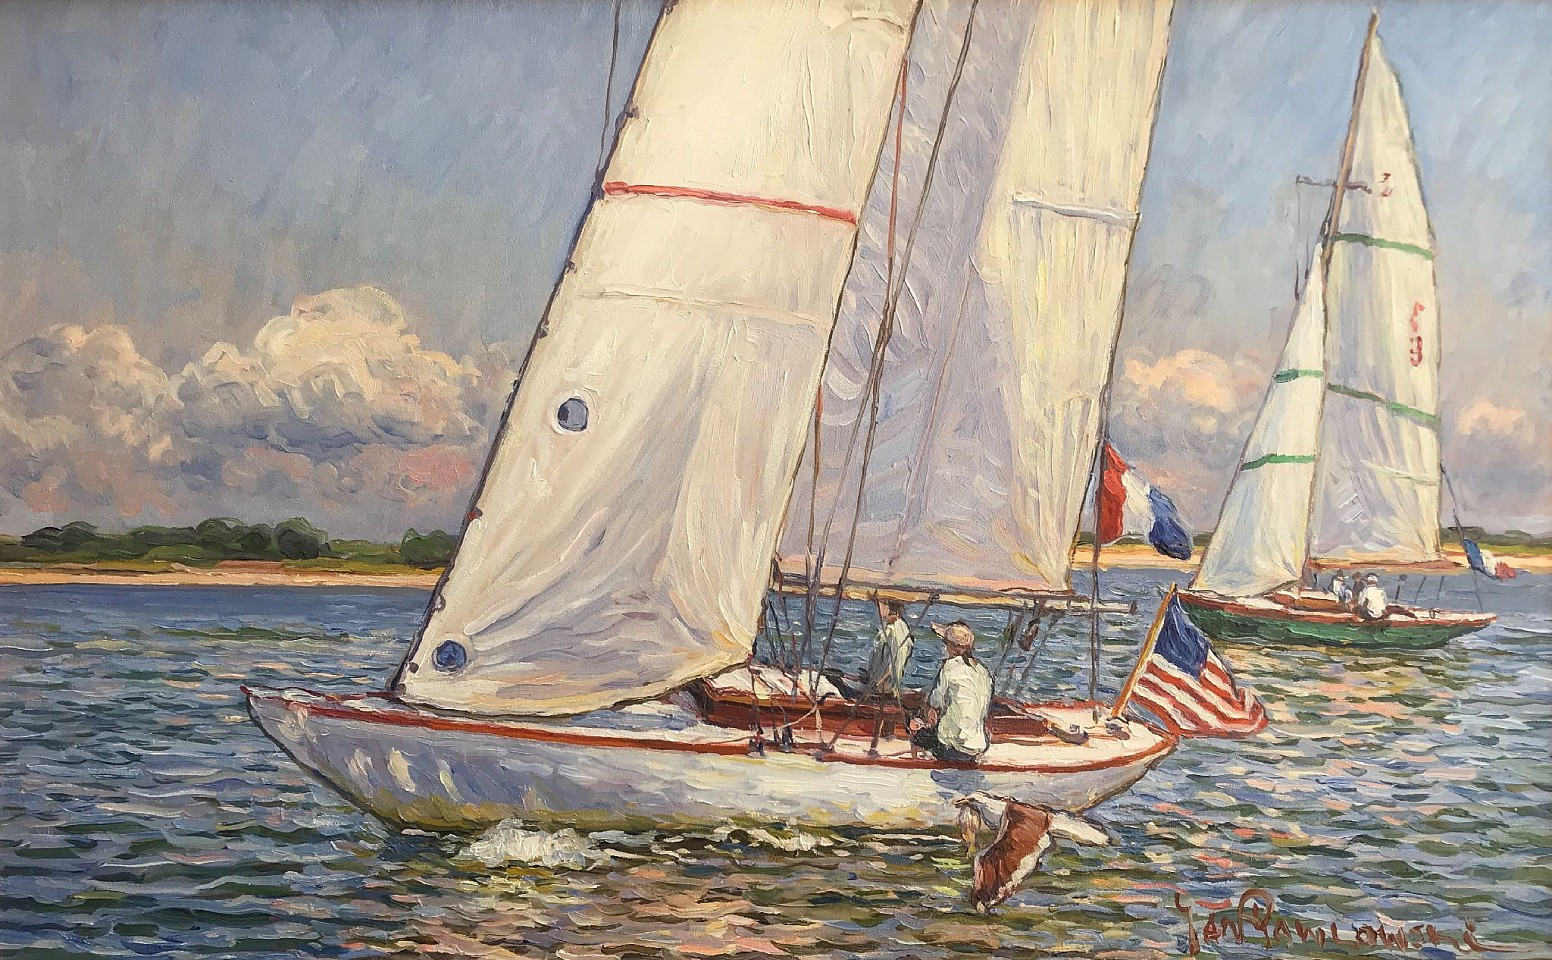 Jan Pawlowski ,   Happy Sailing (Nantucket)  ,  2017     oil on canvas ,  20 x 32 in. (50.8 x 81.3 cm)     JP1020001